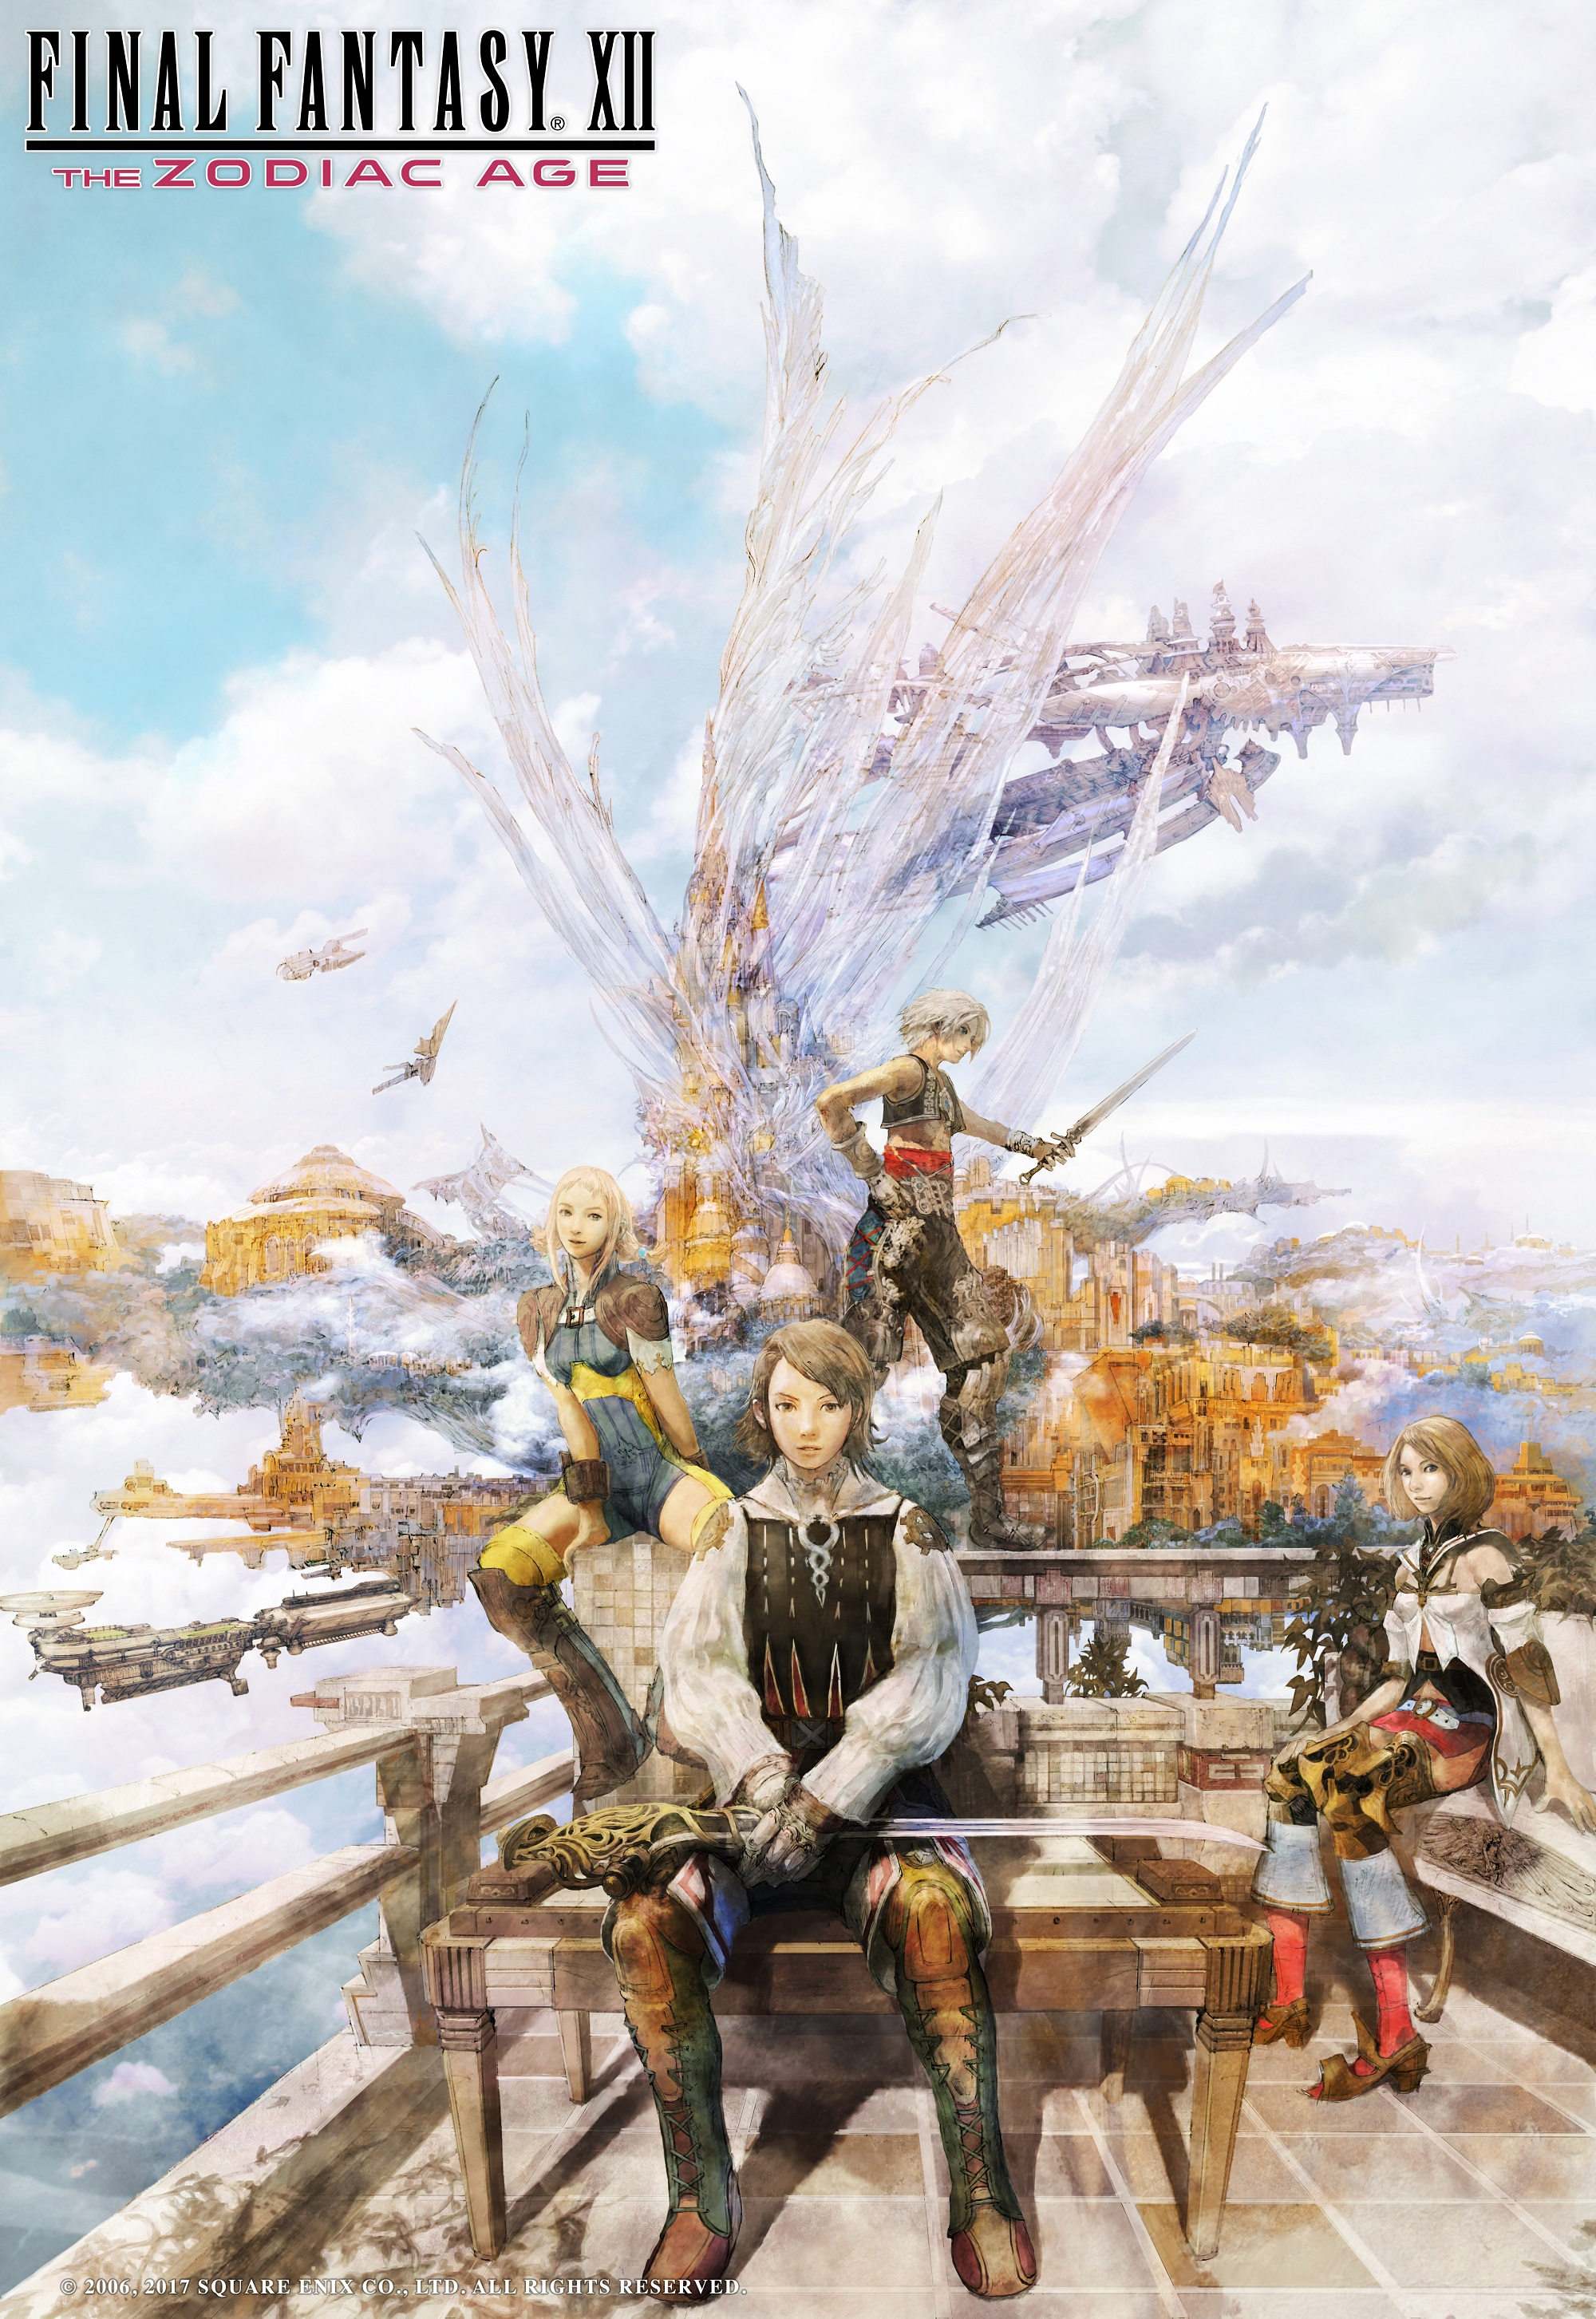 Final Fantasy XII: The Zodiac Age differences, changes and